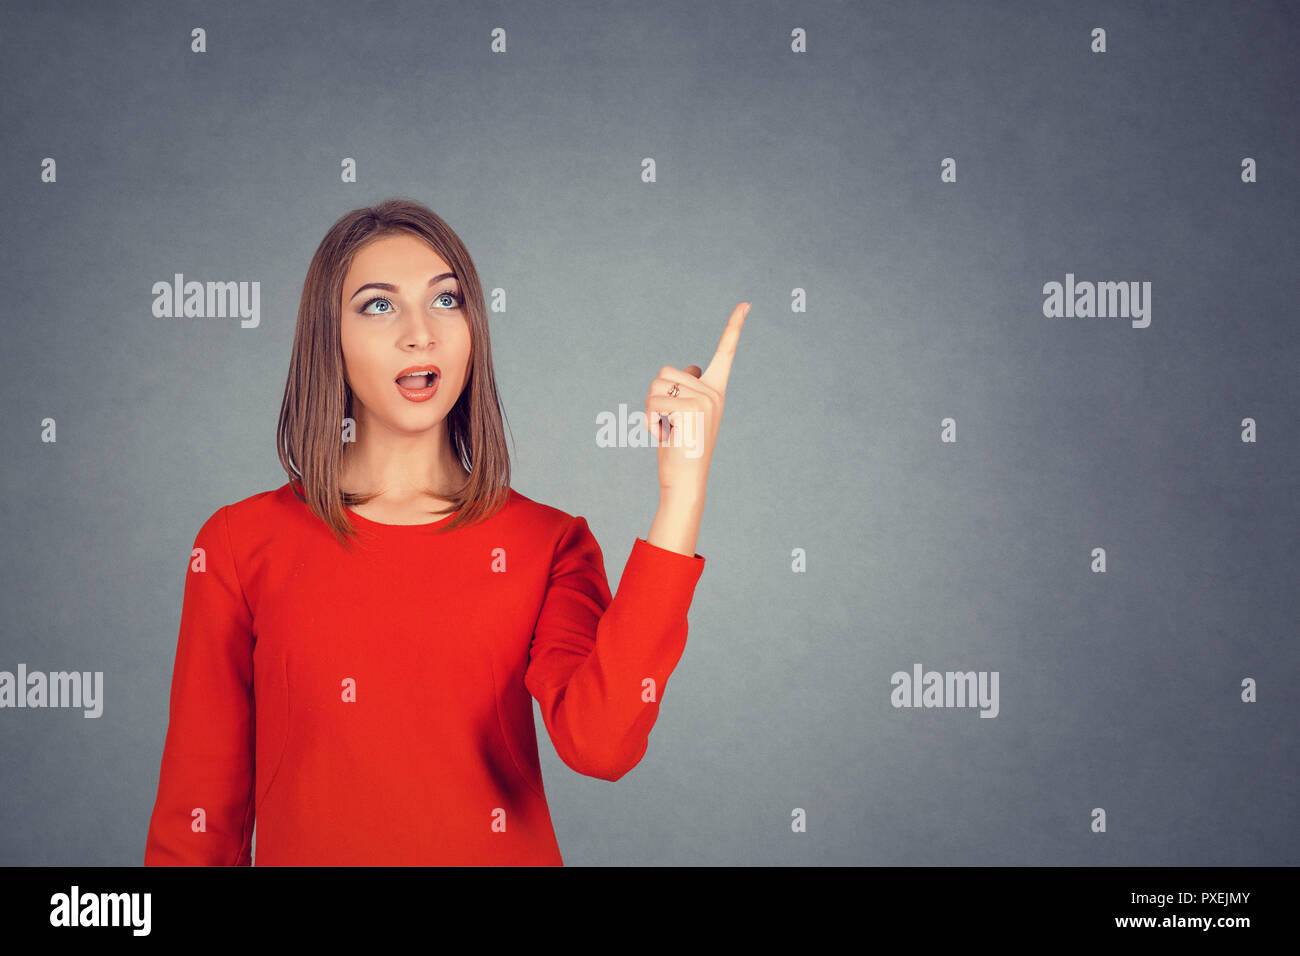 Surprised woman pointing her finger up - Stock Image